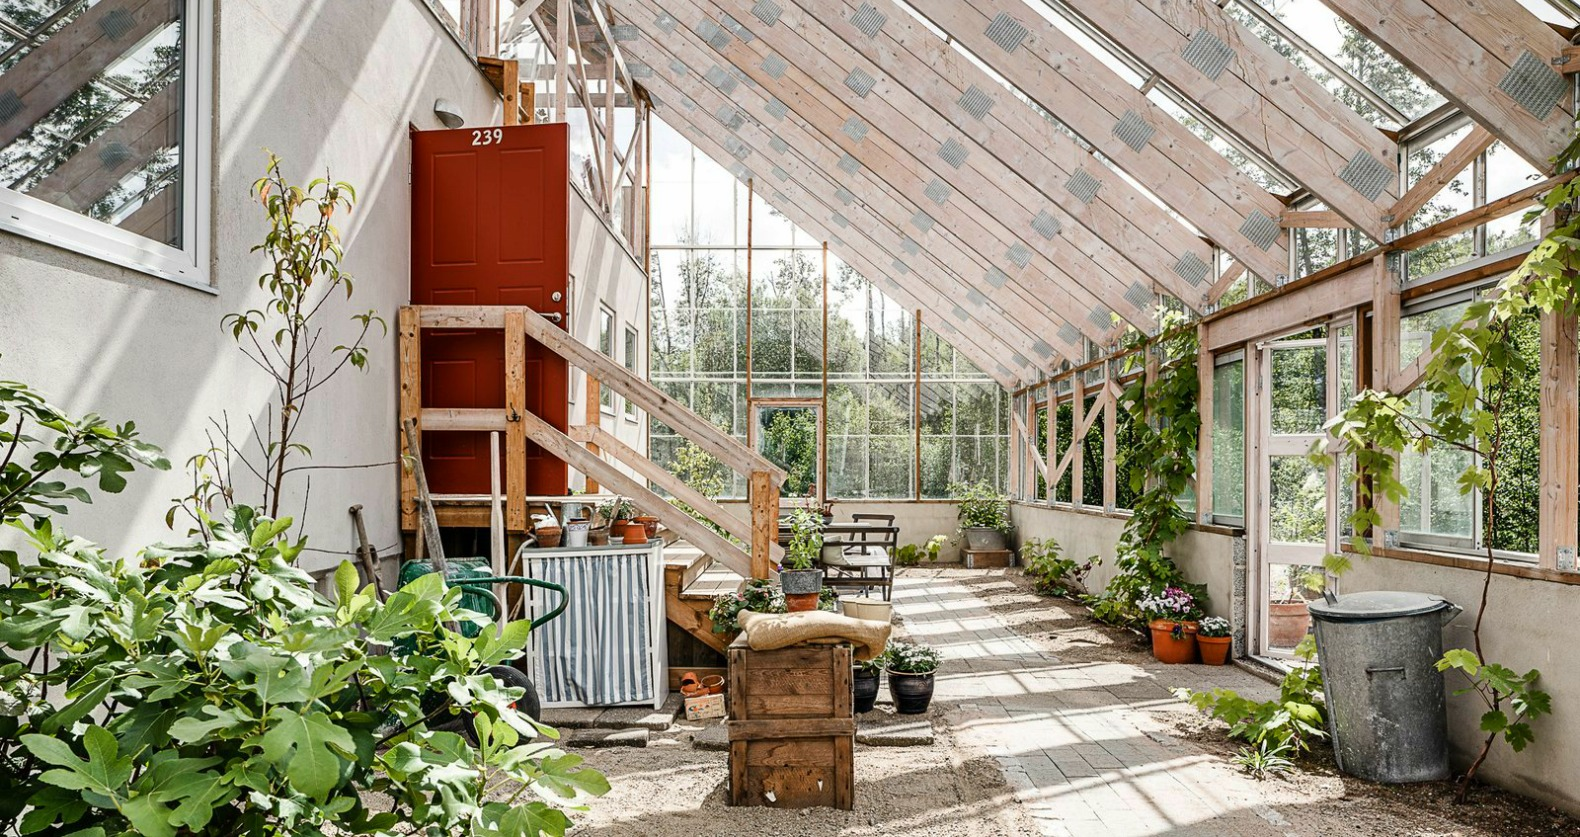 Gorgeous solar-powered greenhouse home in Sweden hits the market